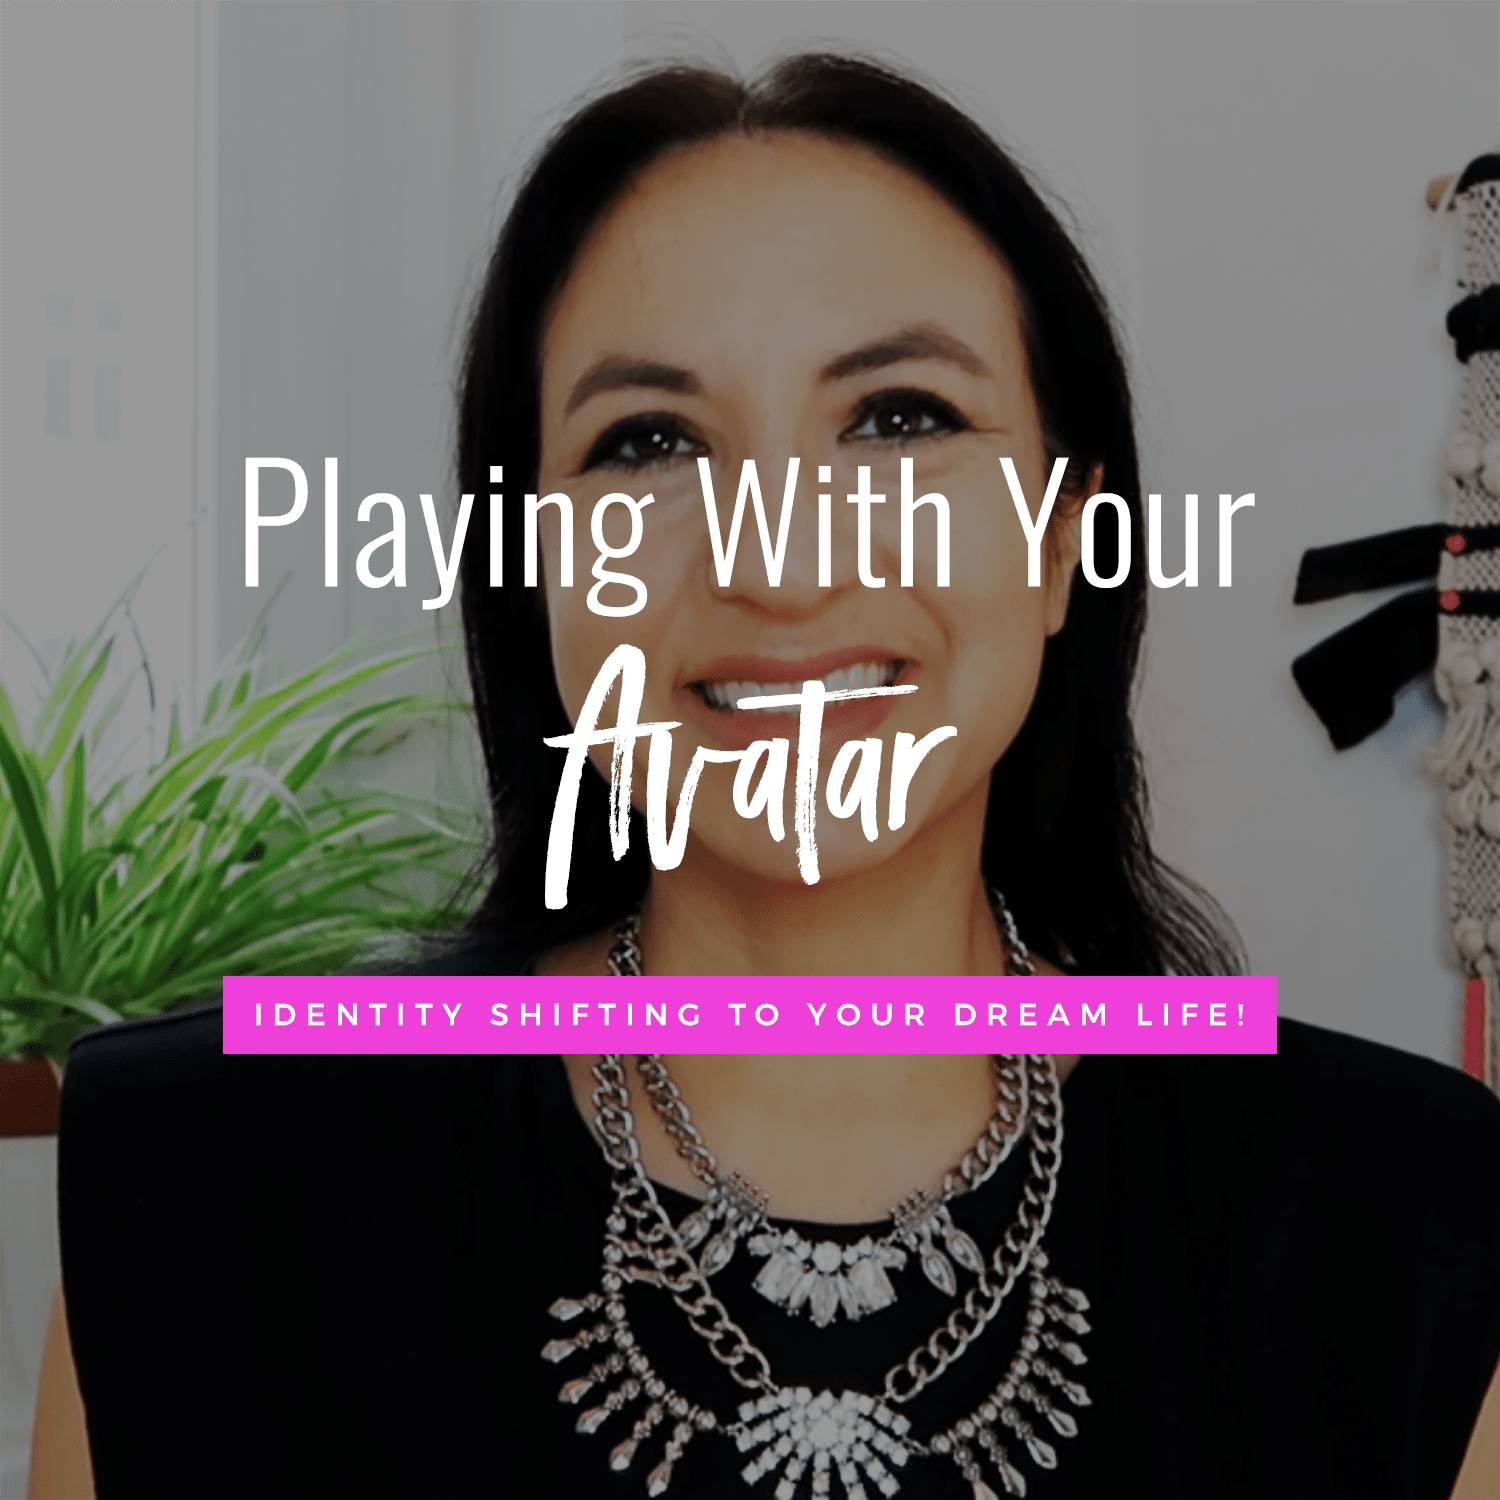 Playing With Your Avatar: Create Your Dream Life Through Identity Shifting